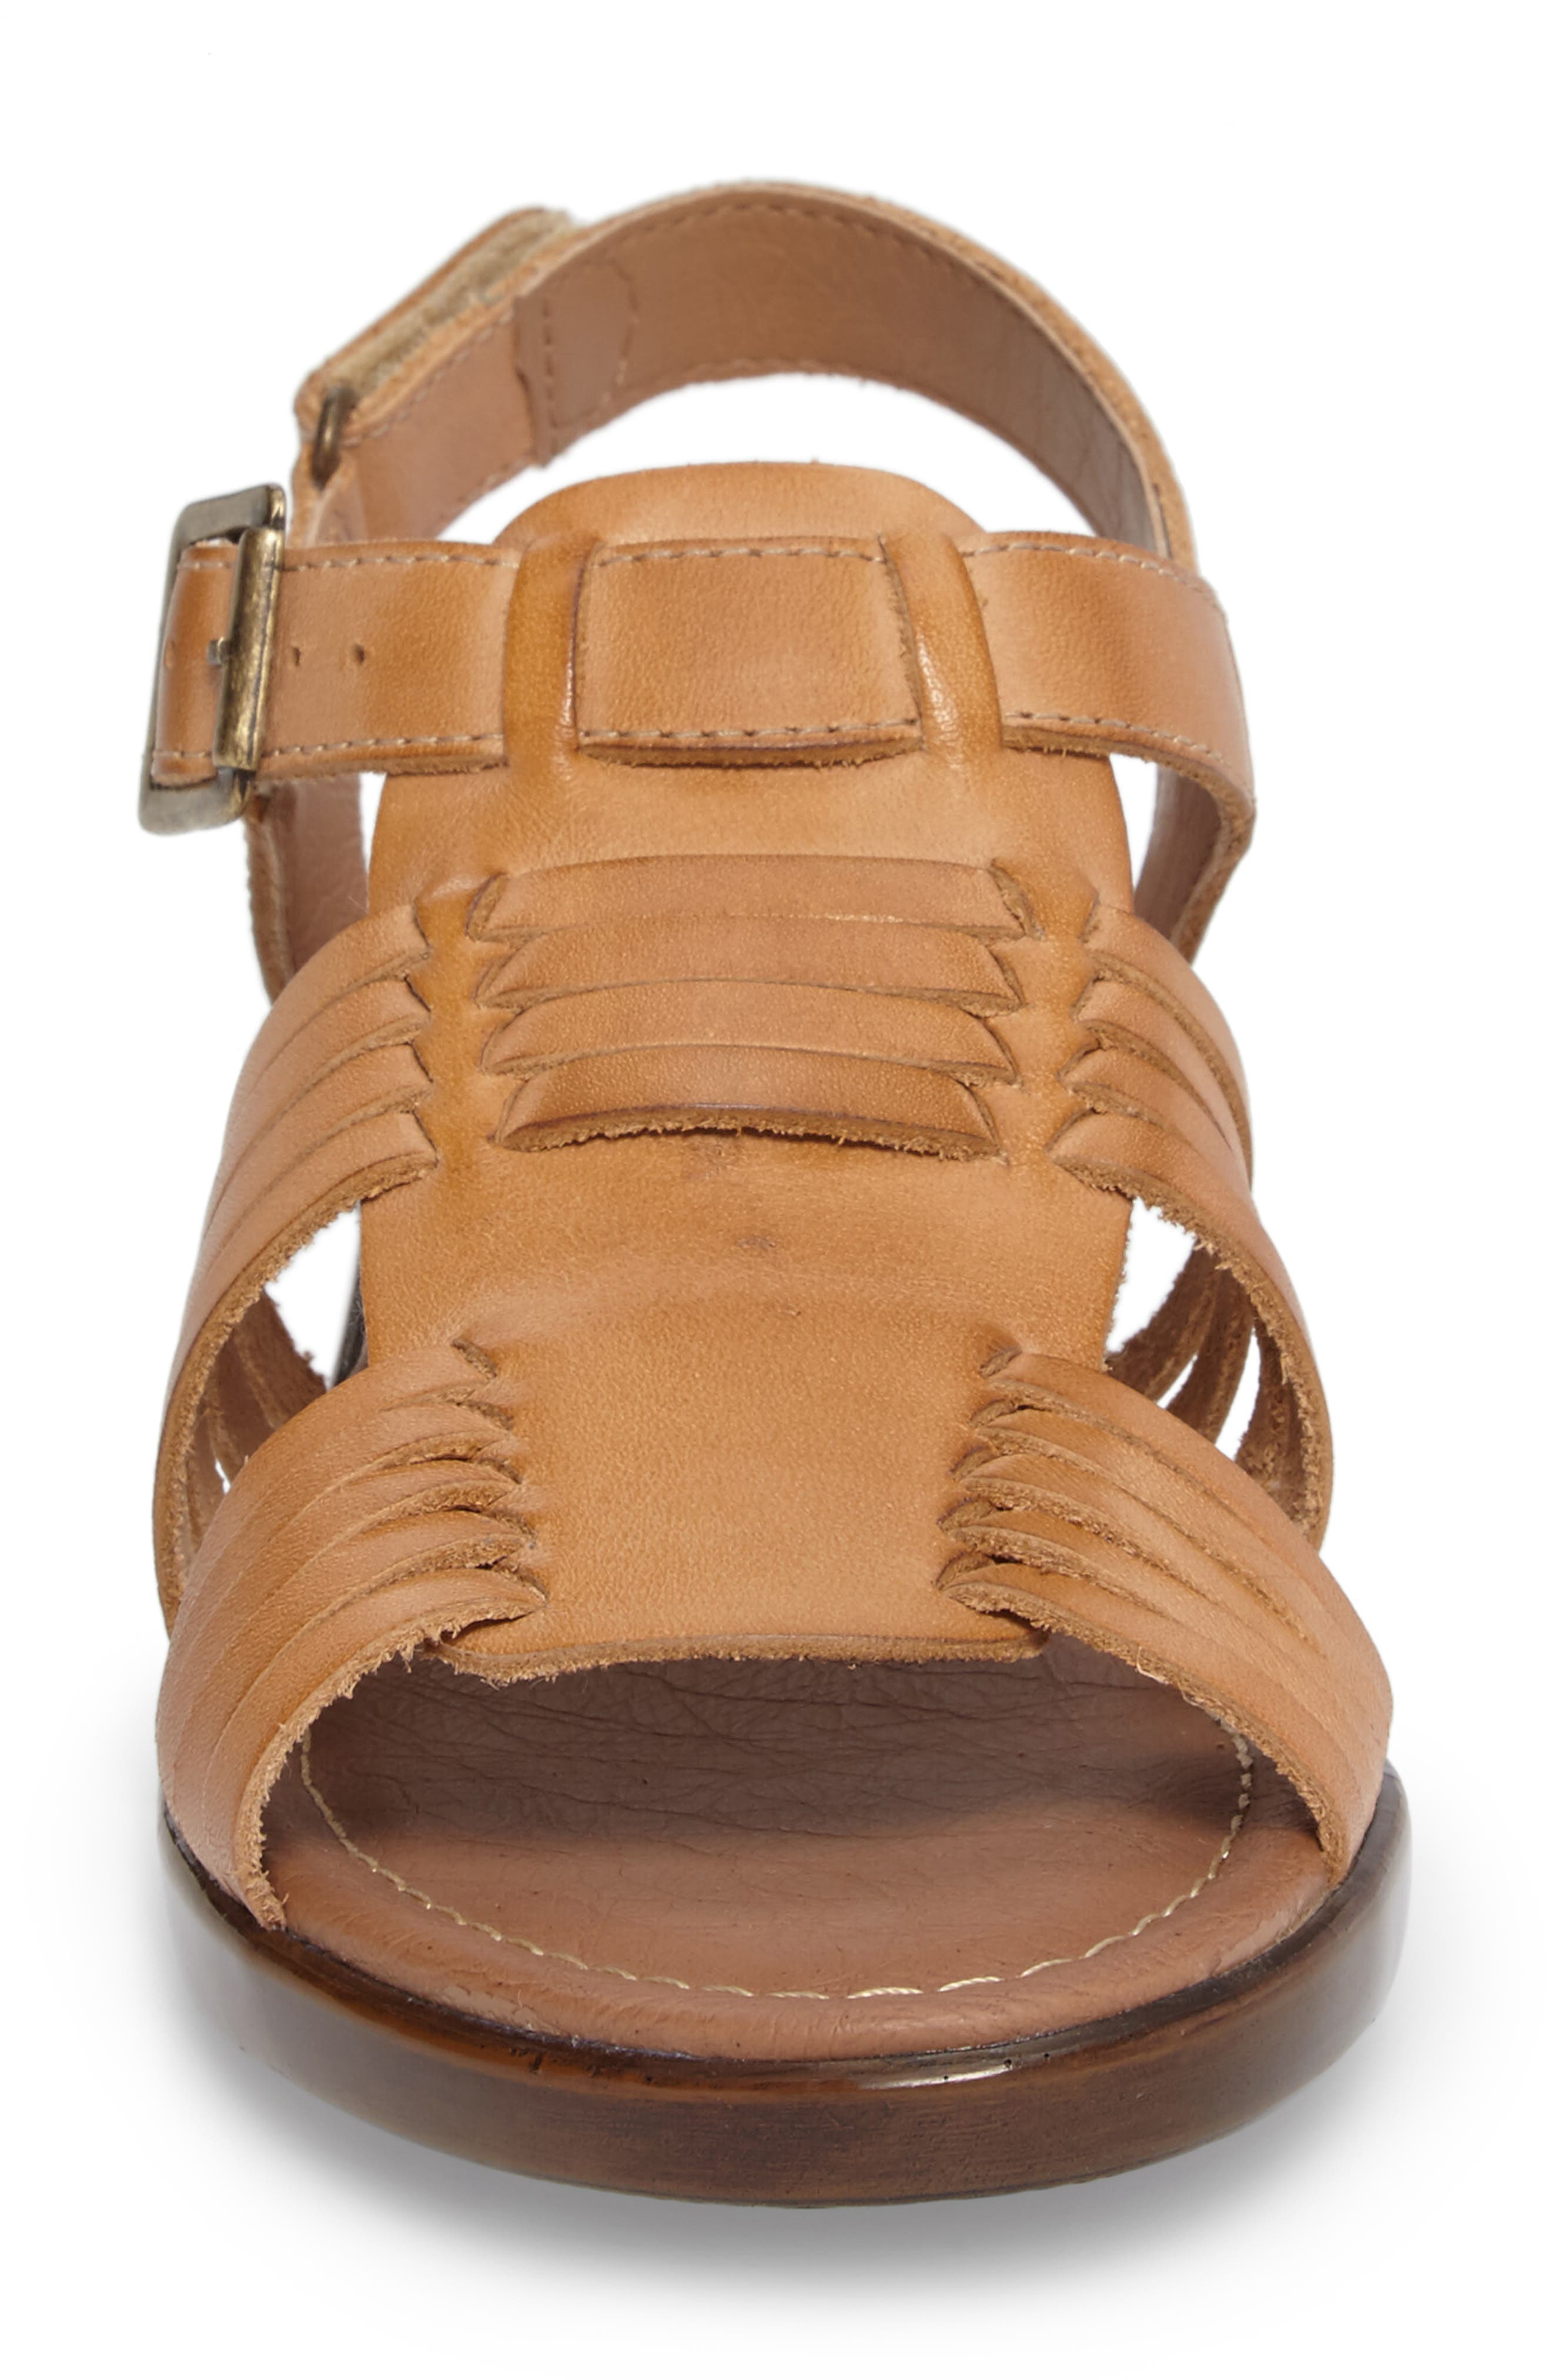 Freeport Sandal,                             Alternate thumbnail 4, color,                             NATURAL LEATHER